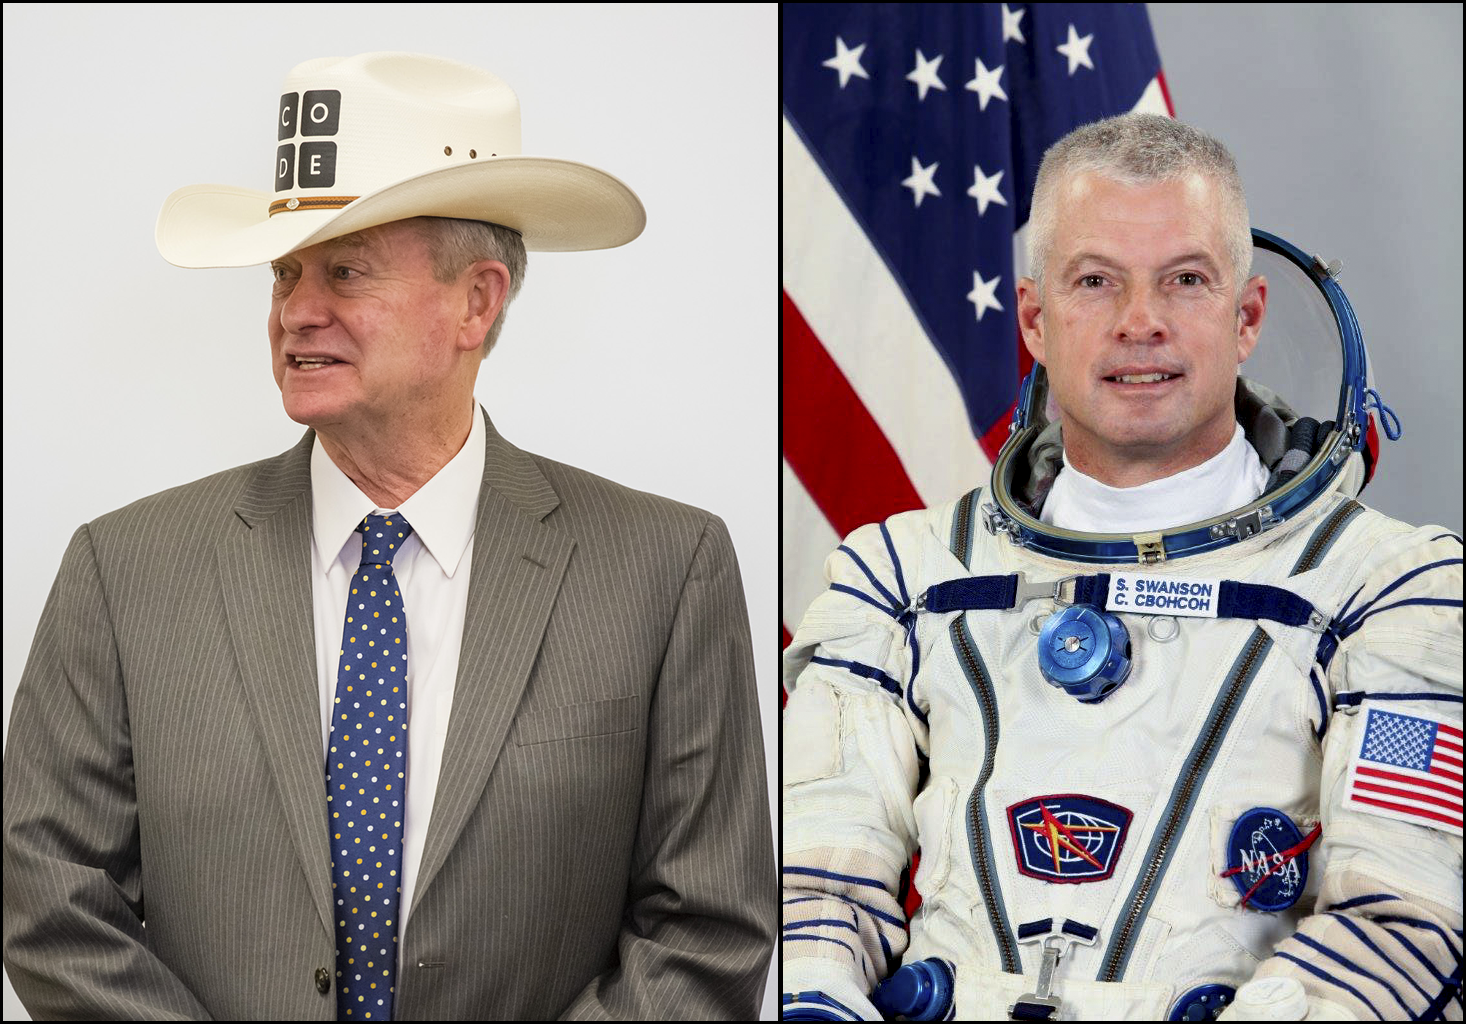 Governor Little and Astronaut Steve Swanson